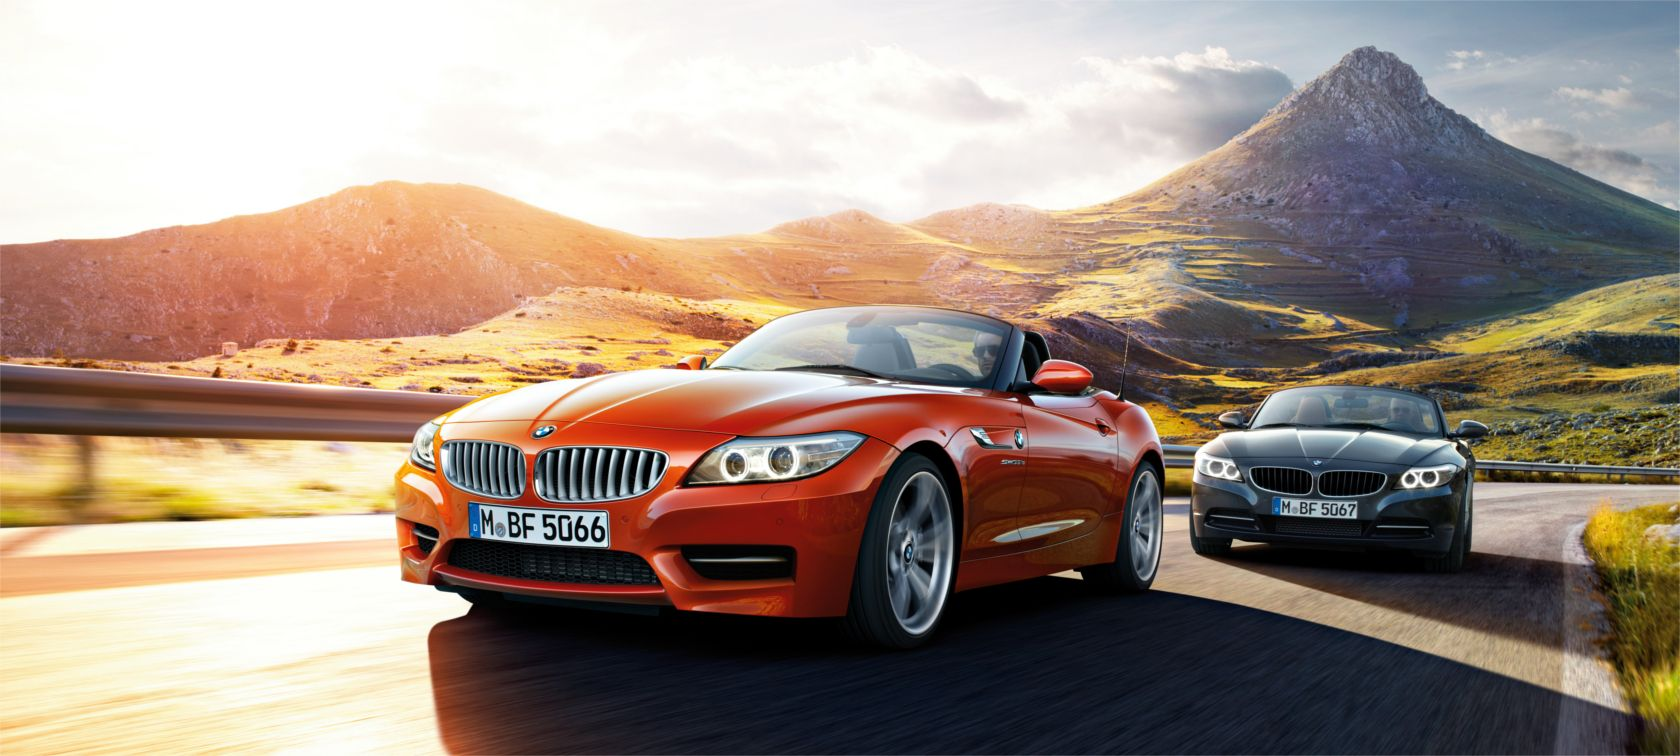 http://www.bmw.co.jp/content/dam/bmw/common/all-models/BMW%20Z4/Roadster/2013/At%20a%20glance/E89_StagePresentation_Ataglance.jpg/jcr:content/renditions/cq5dam.resized.img.1680.large.time1448243069169.jpg